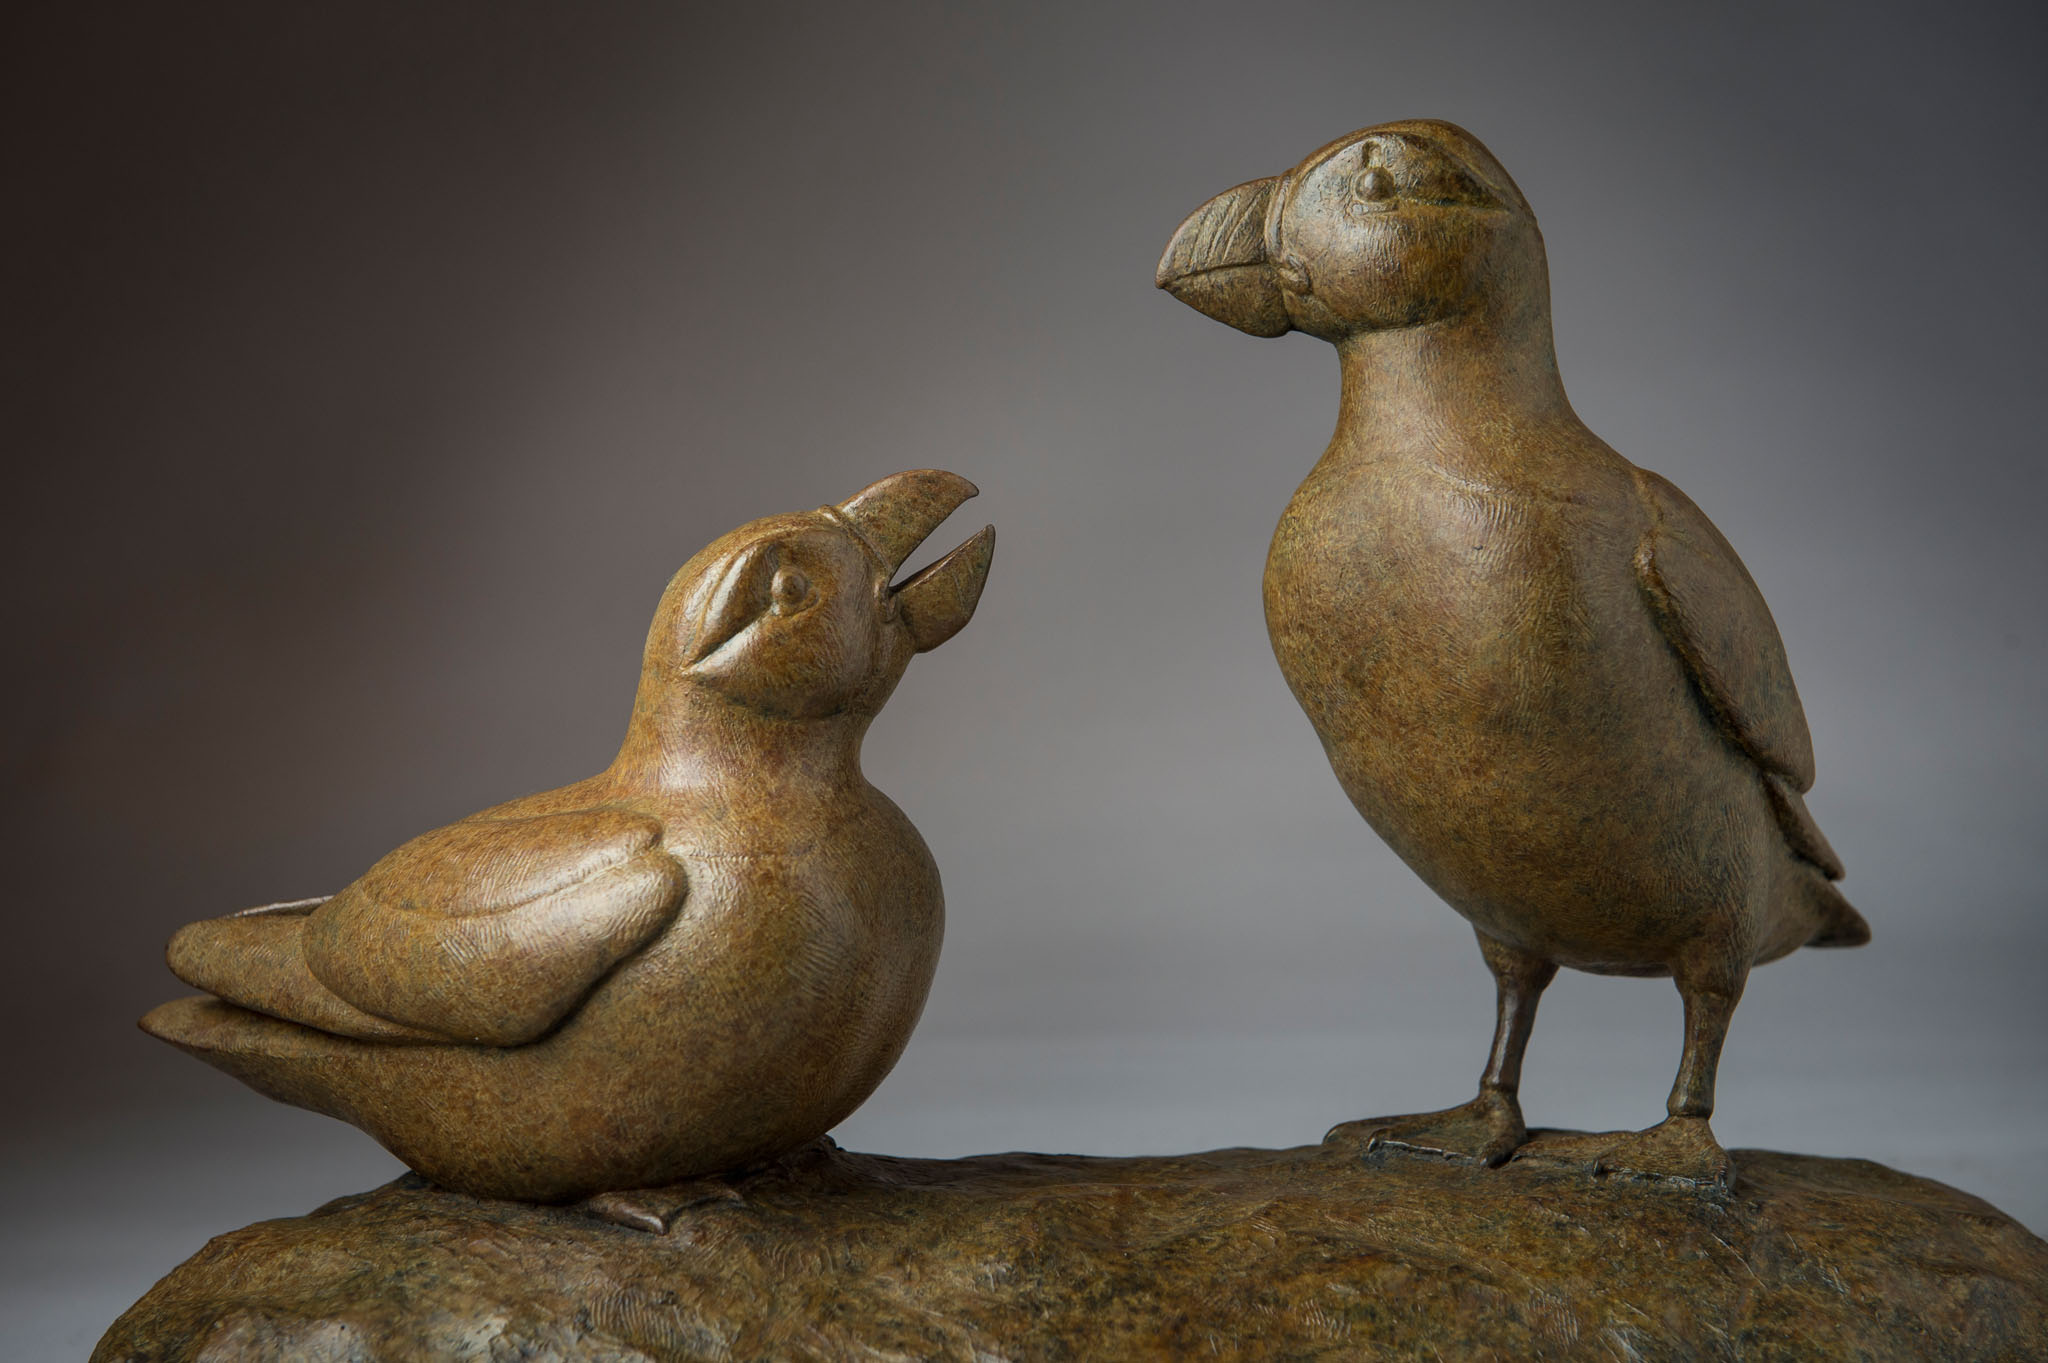 Bronze sculpture of a Pair of Atlantic Puffins by artist Anthony Smith